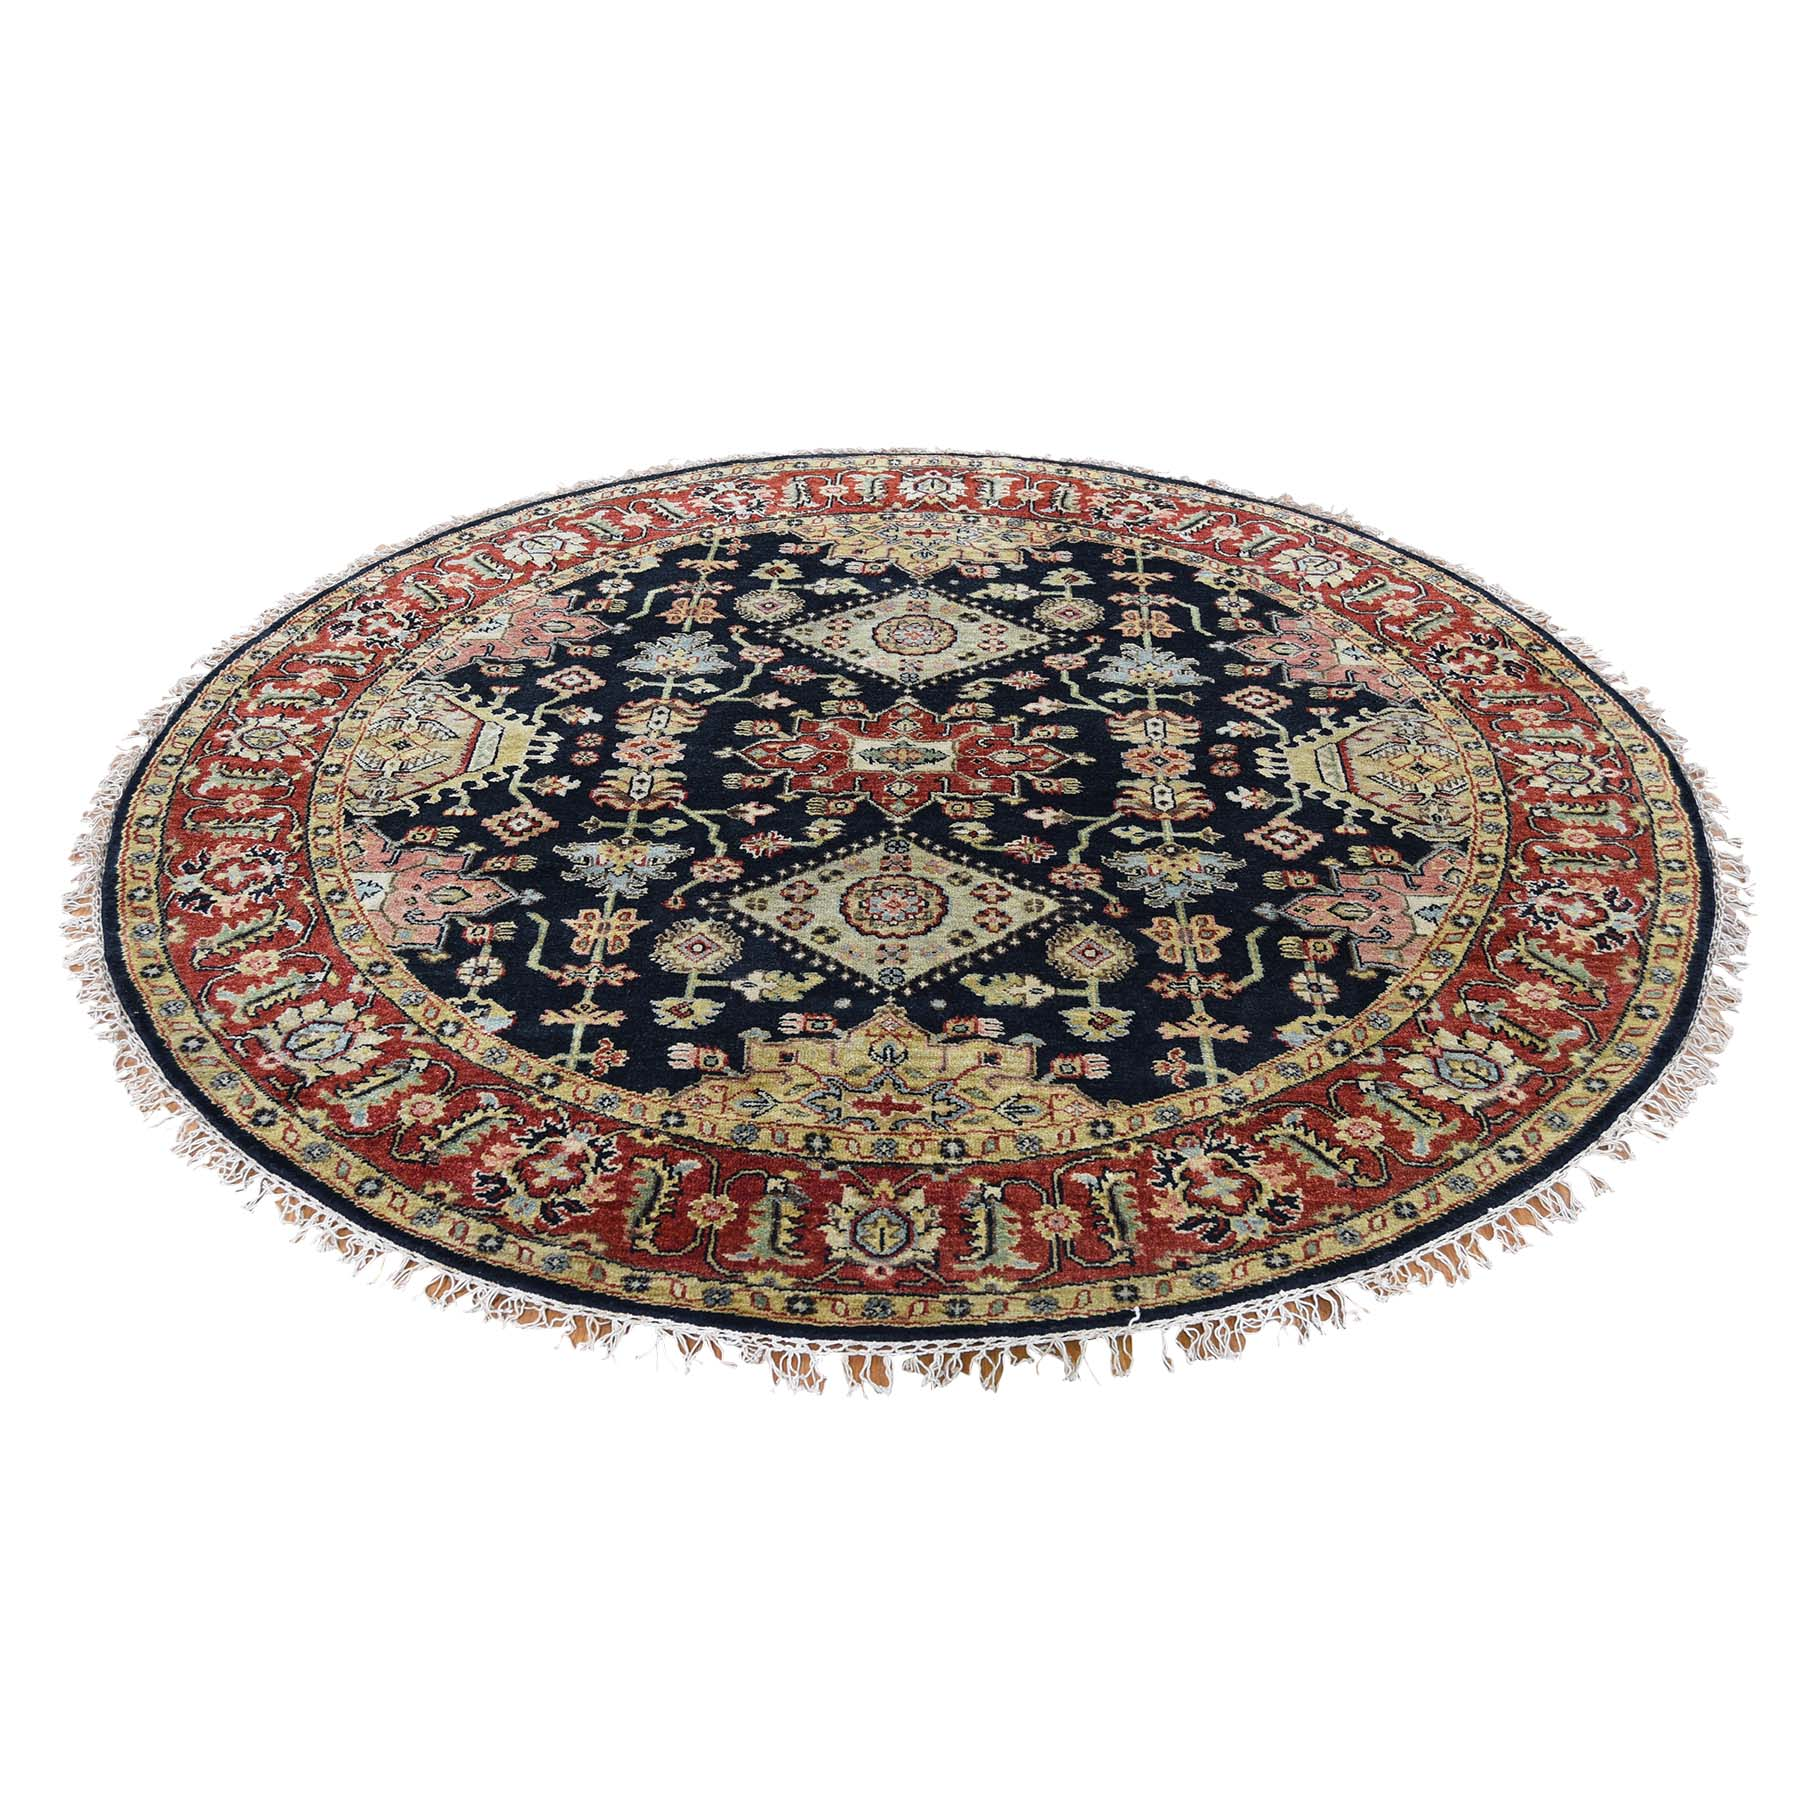 6'X6' Black Round Karajeh Design Pure Wool Hand-Knotted Oriental Rug moad6b77